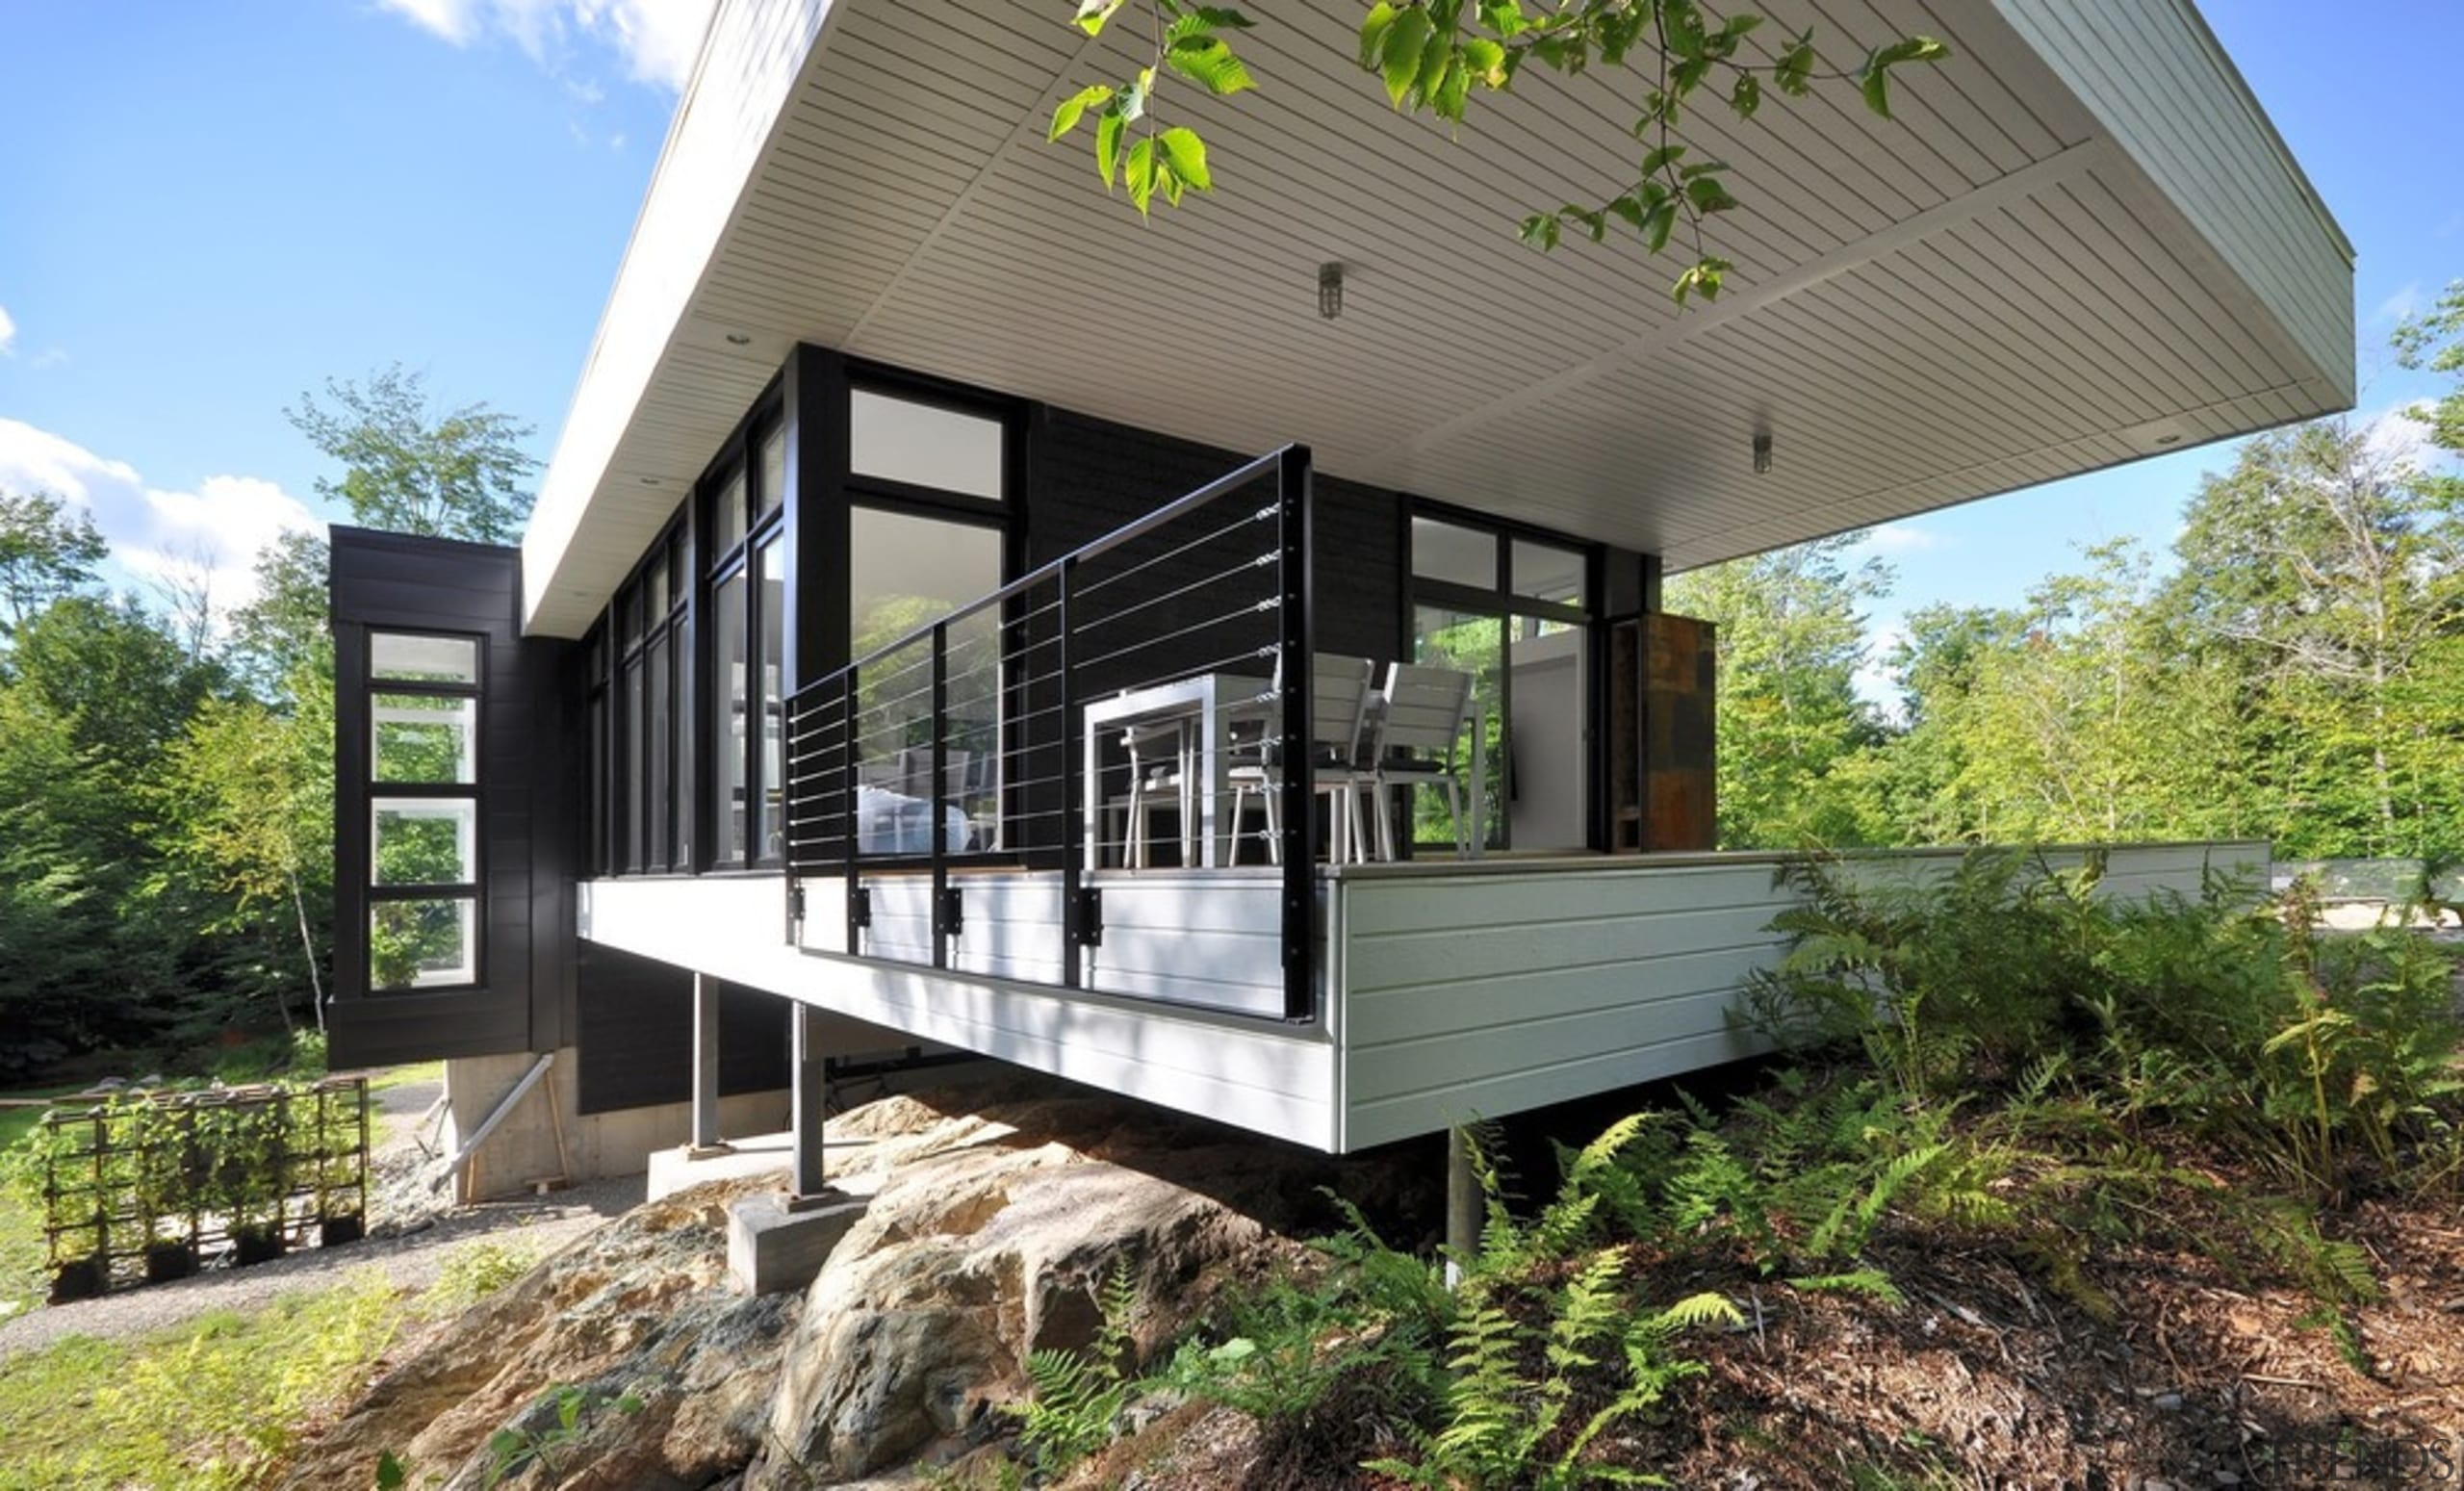 The starting point for the design of this architecture, cottage, home, house, property, real estate, gray